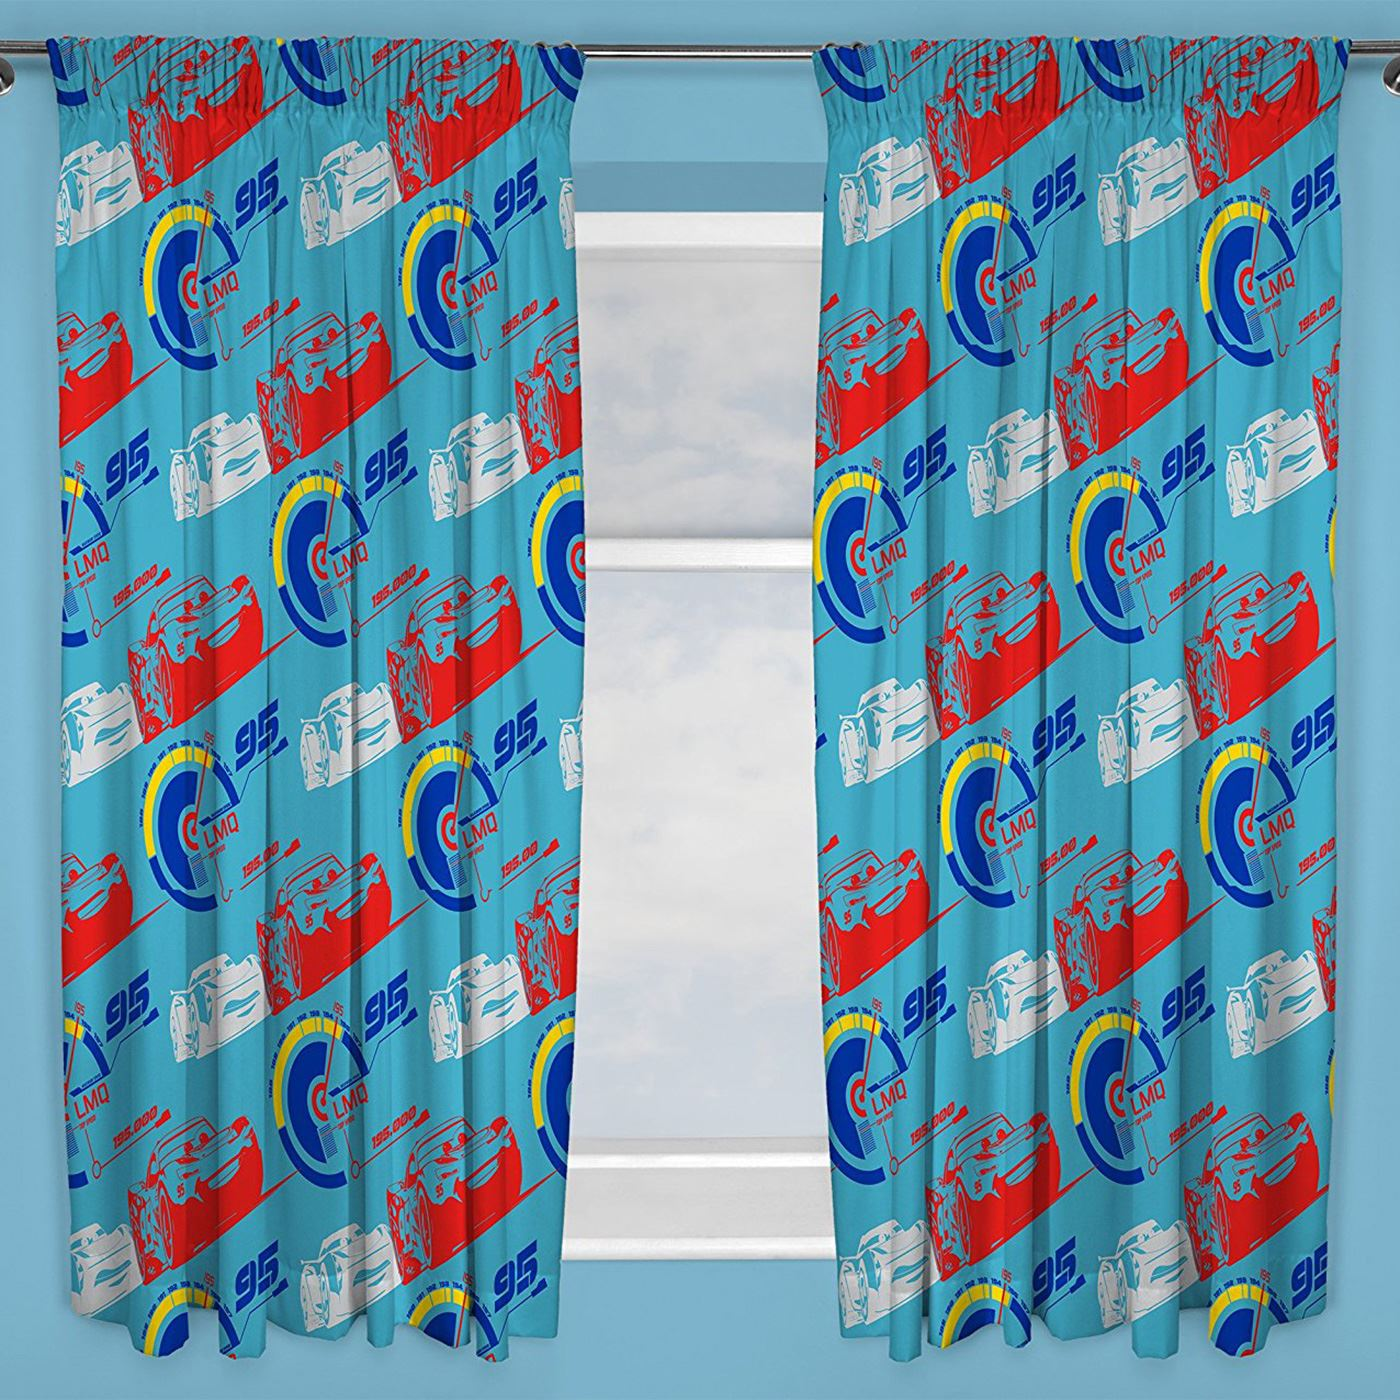 shower room in boys of for childrens teen colorful bathroom glow unique kids baby curtains bedroom curtain bright size dark girl the ideas full girls